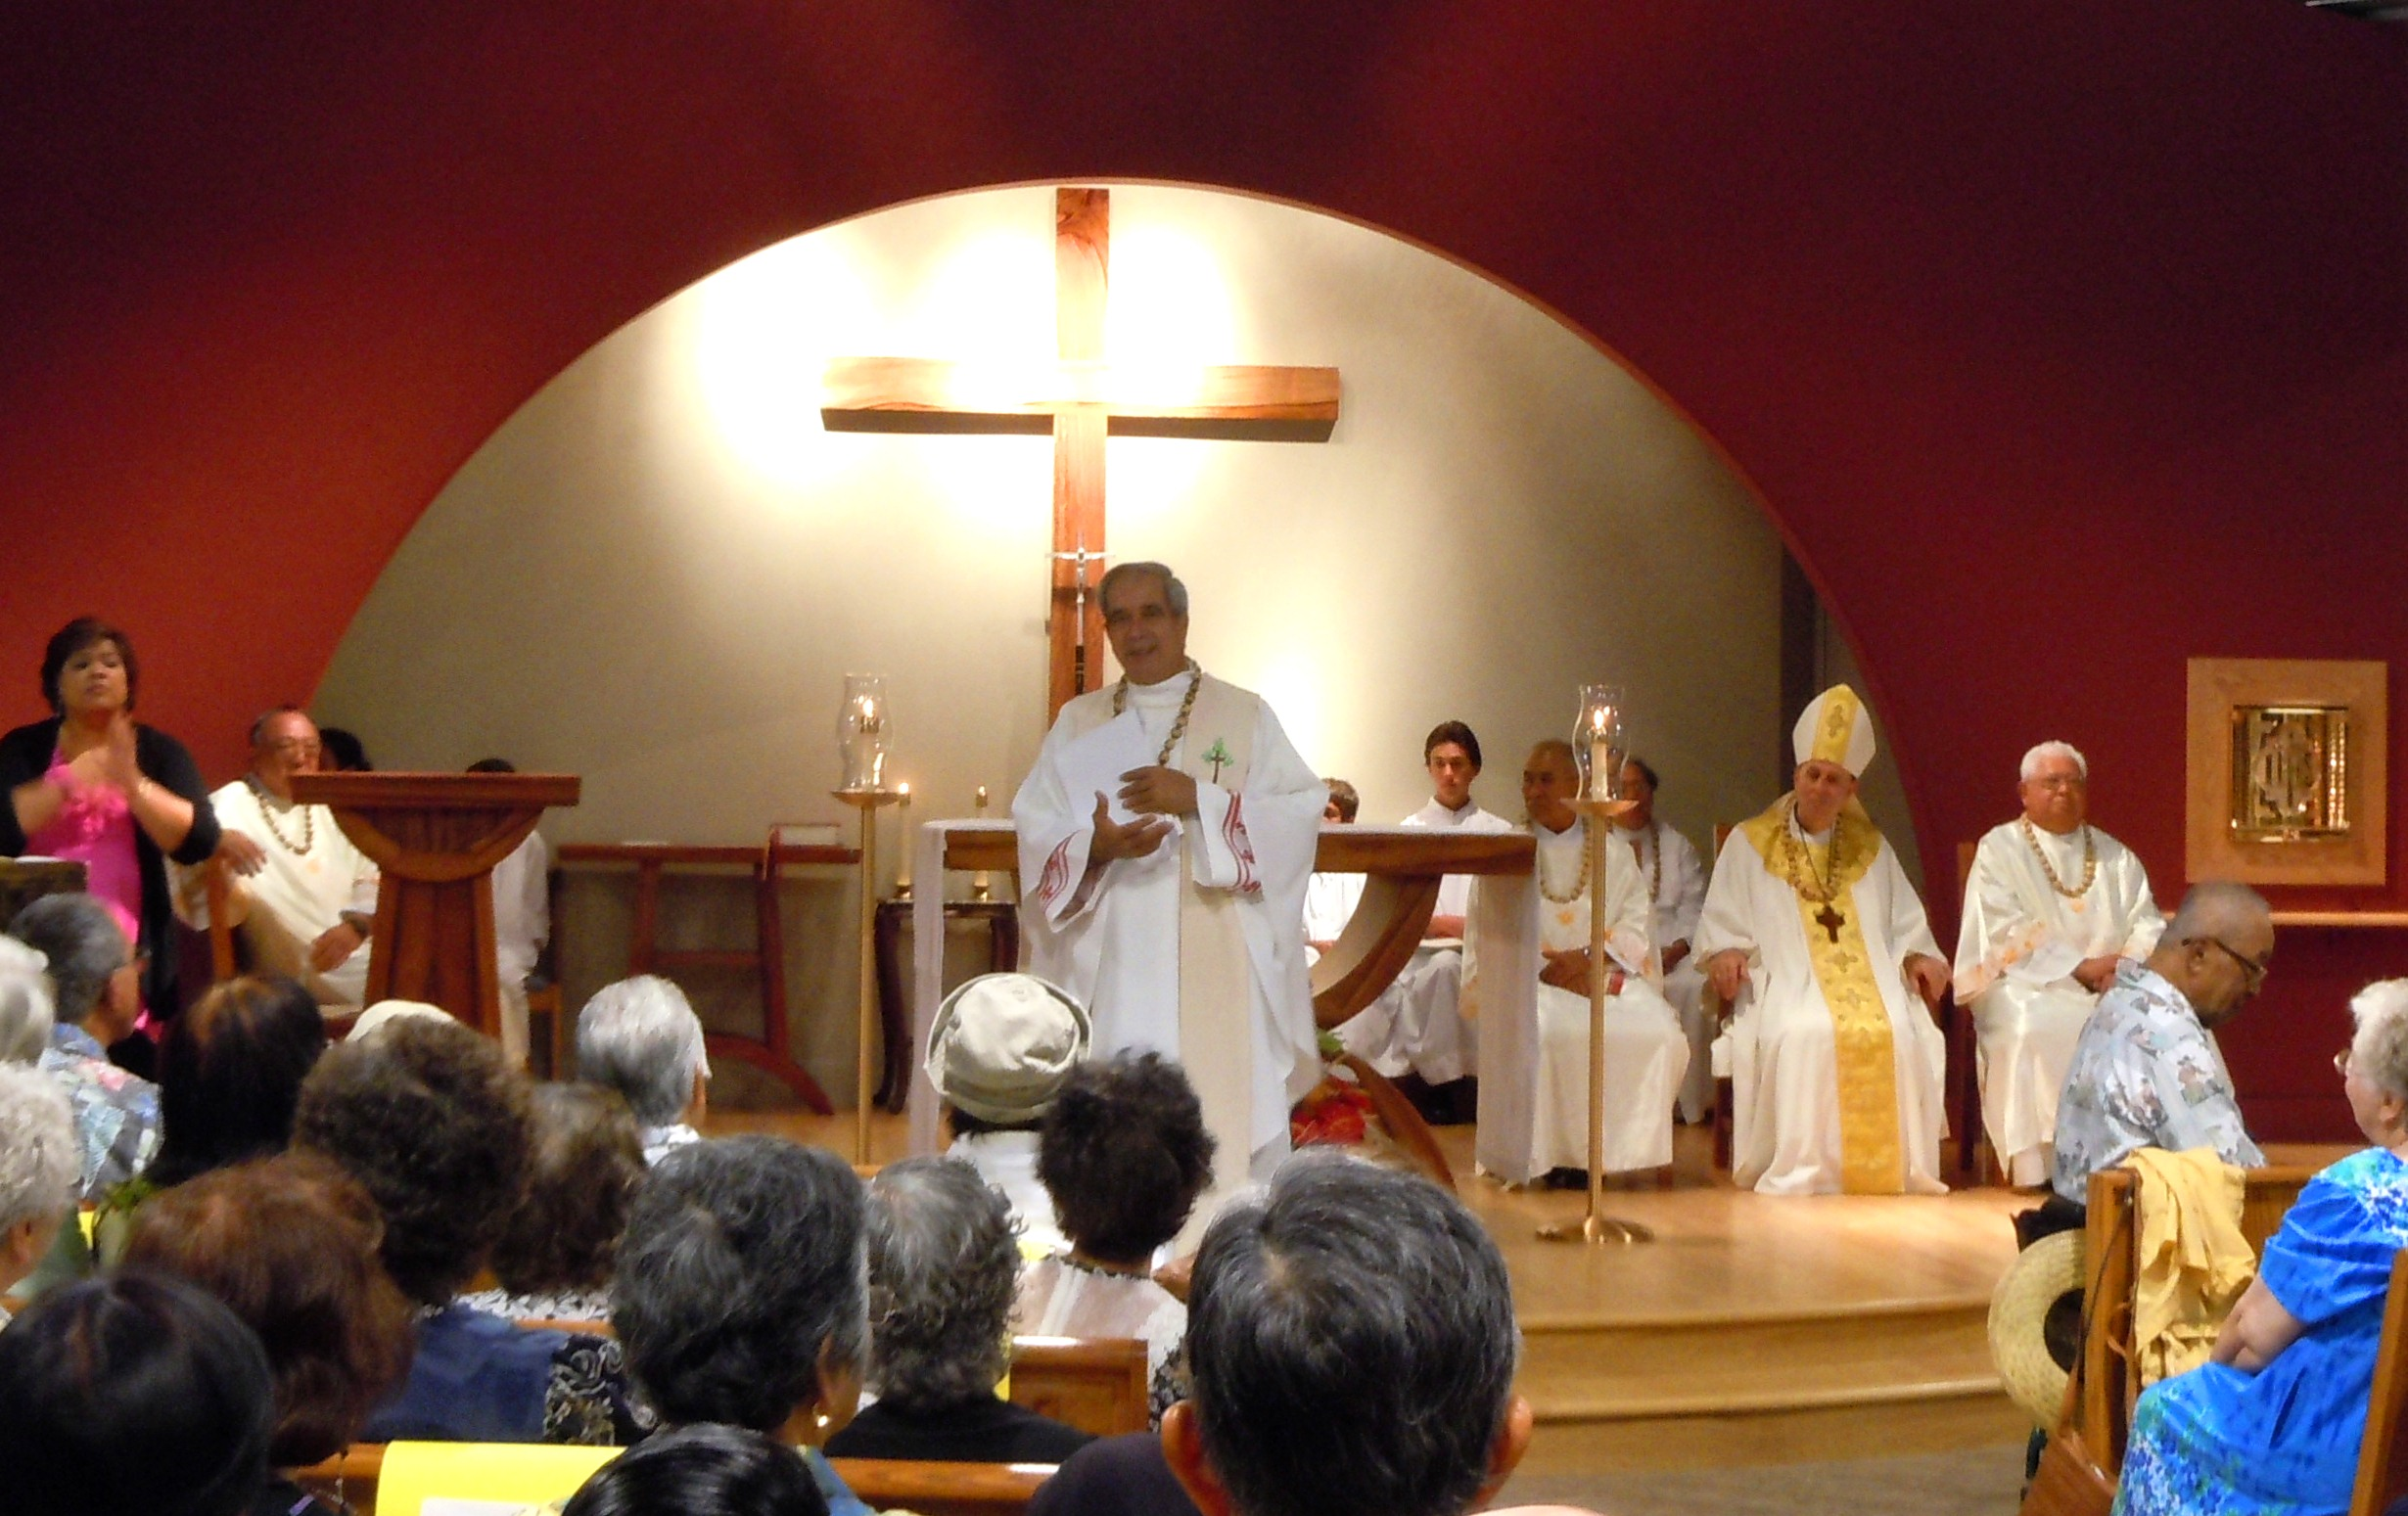 Father Clyde during the dedication Mass of the new St. Damien Church last year. Photo by Catherine Cluett